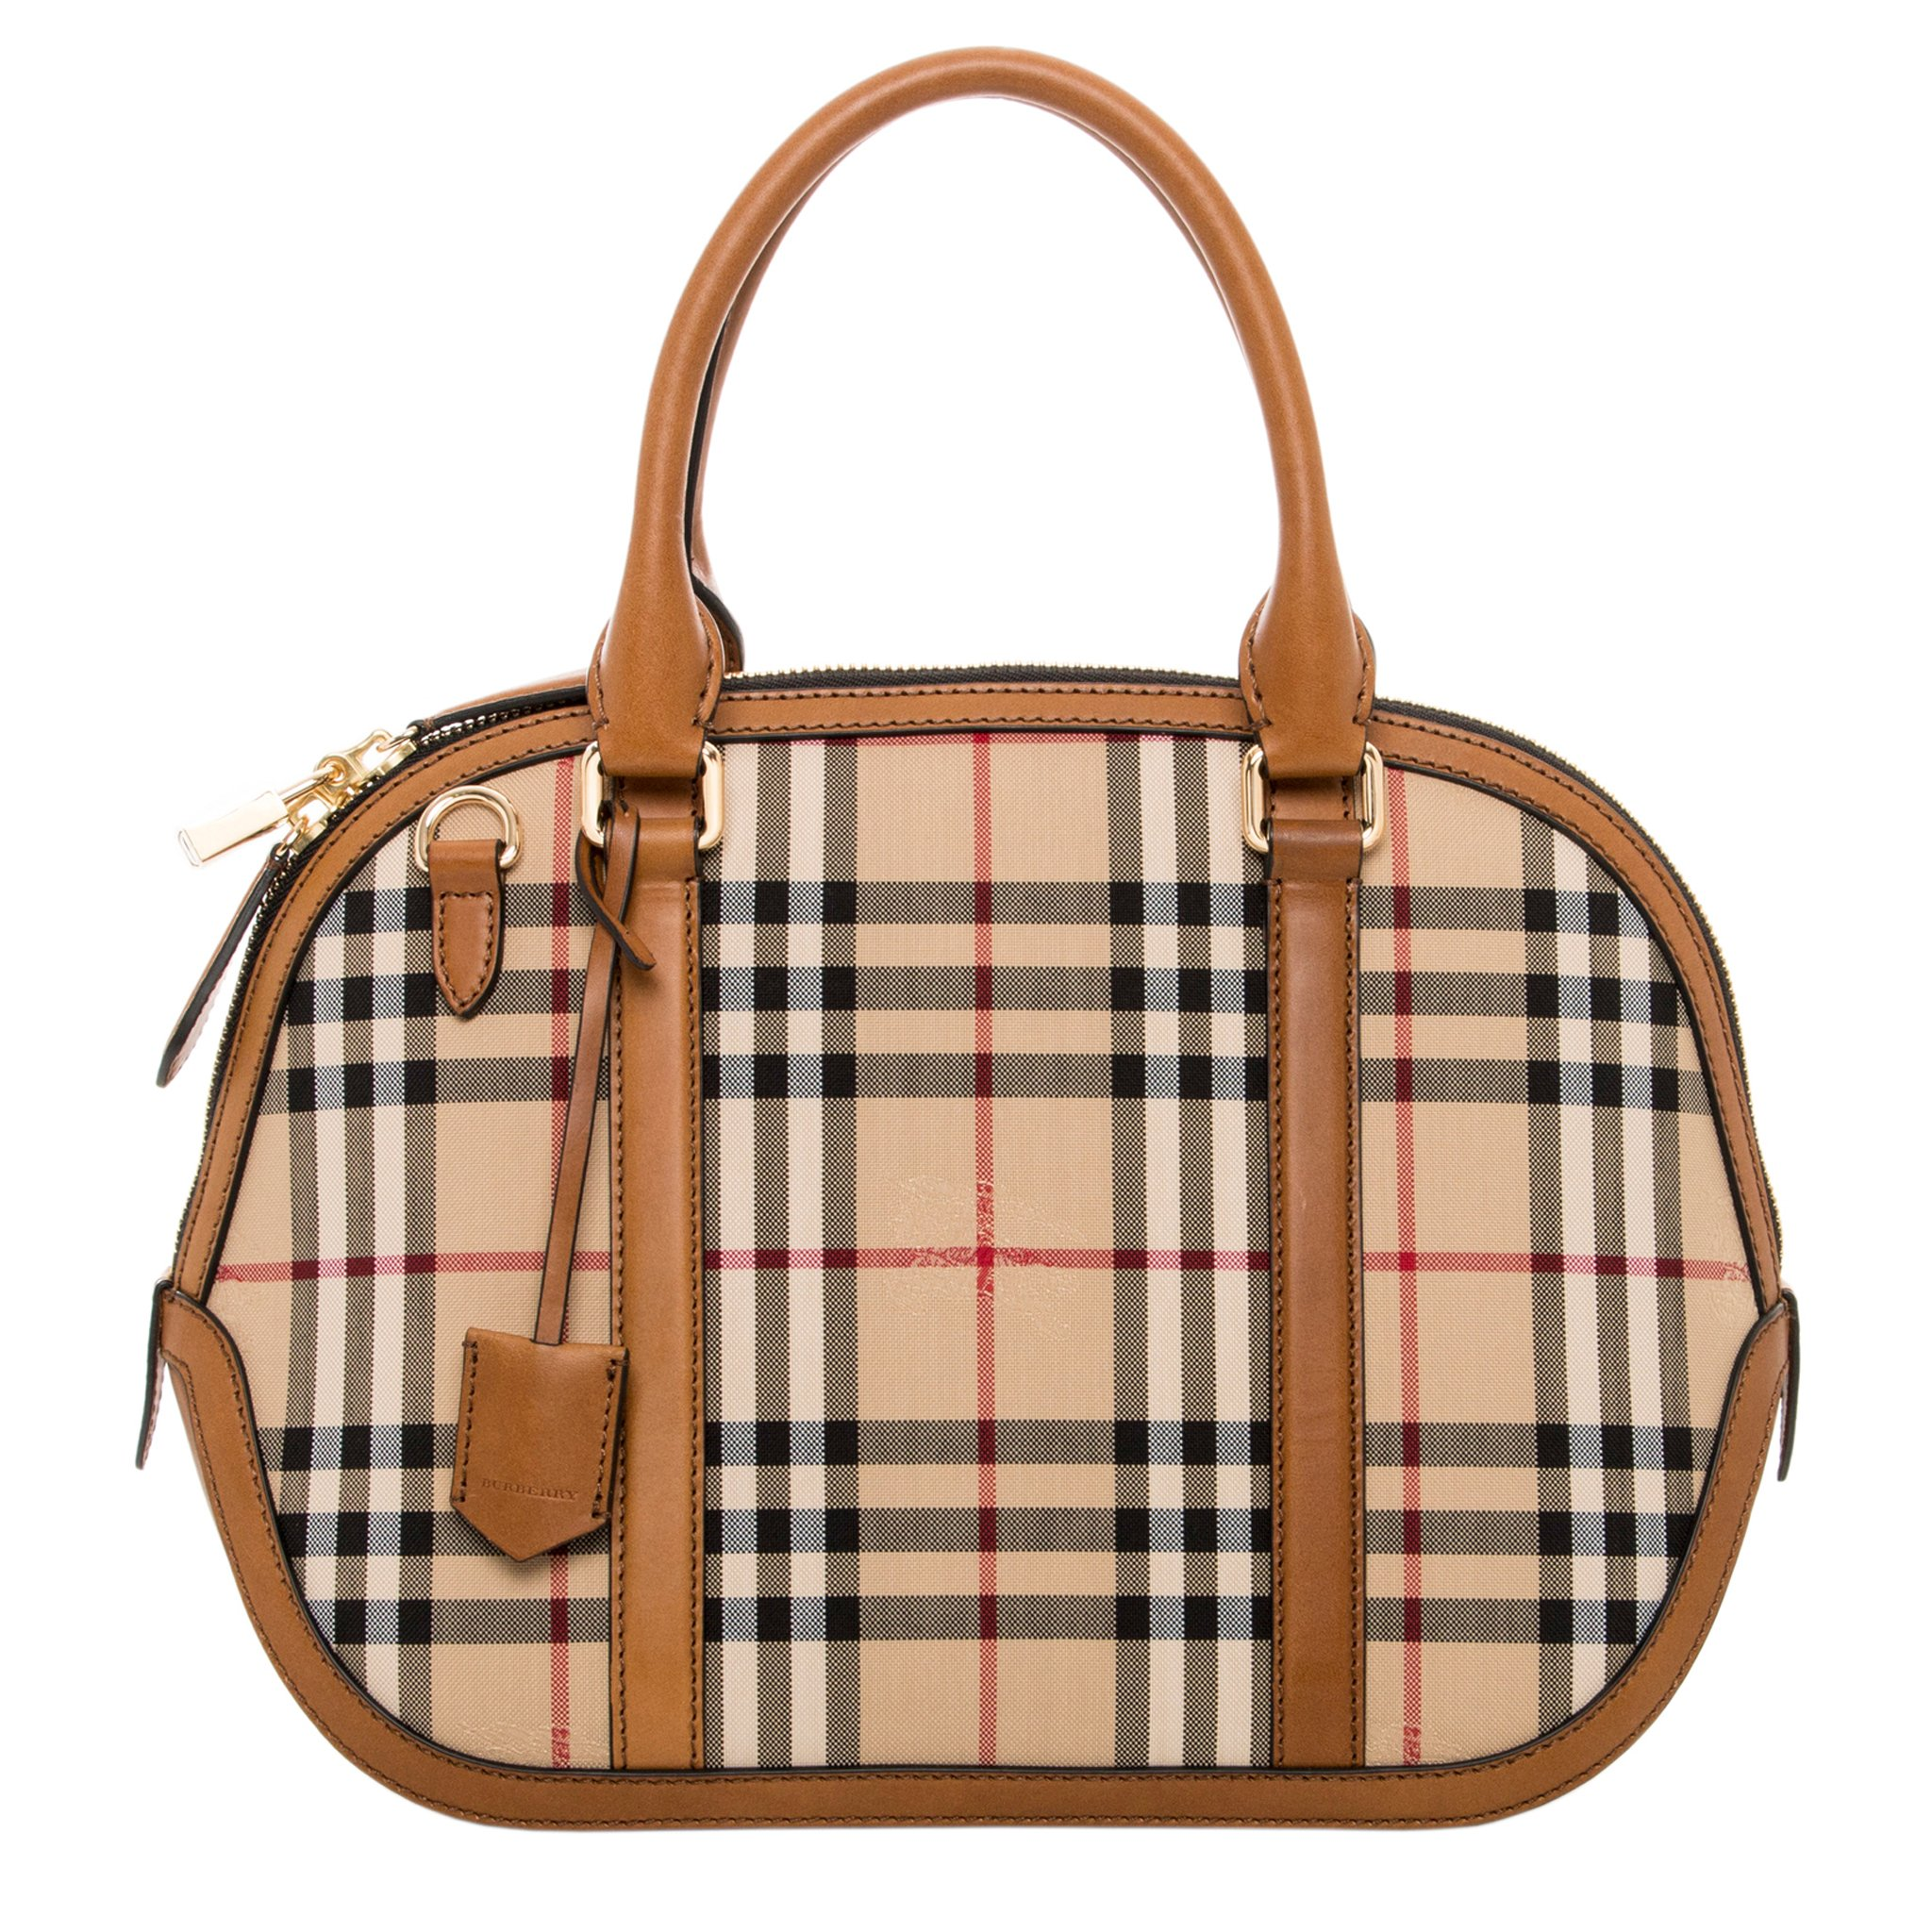 Burberry Women's Small Horseferry Check Orchard Satchel Tan